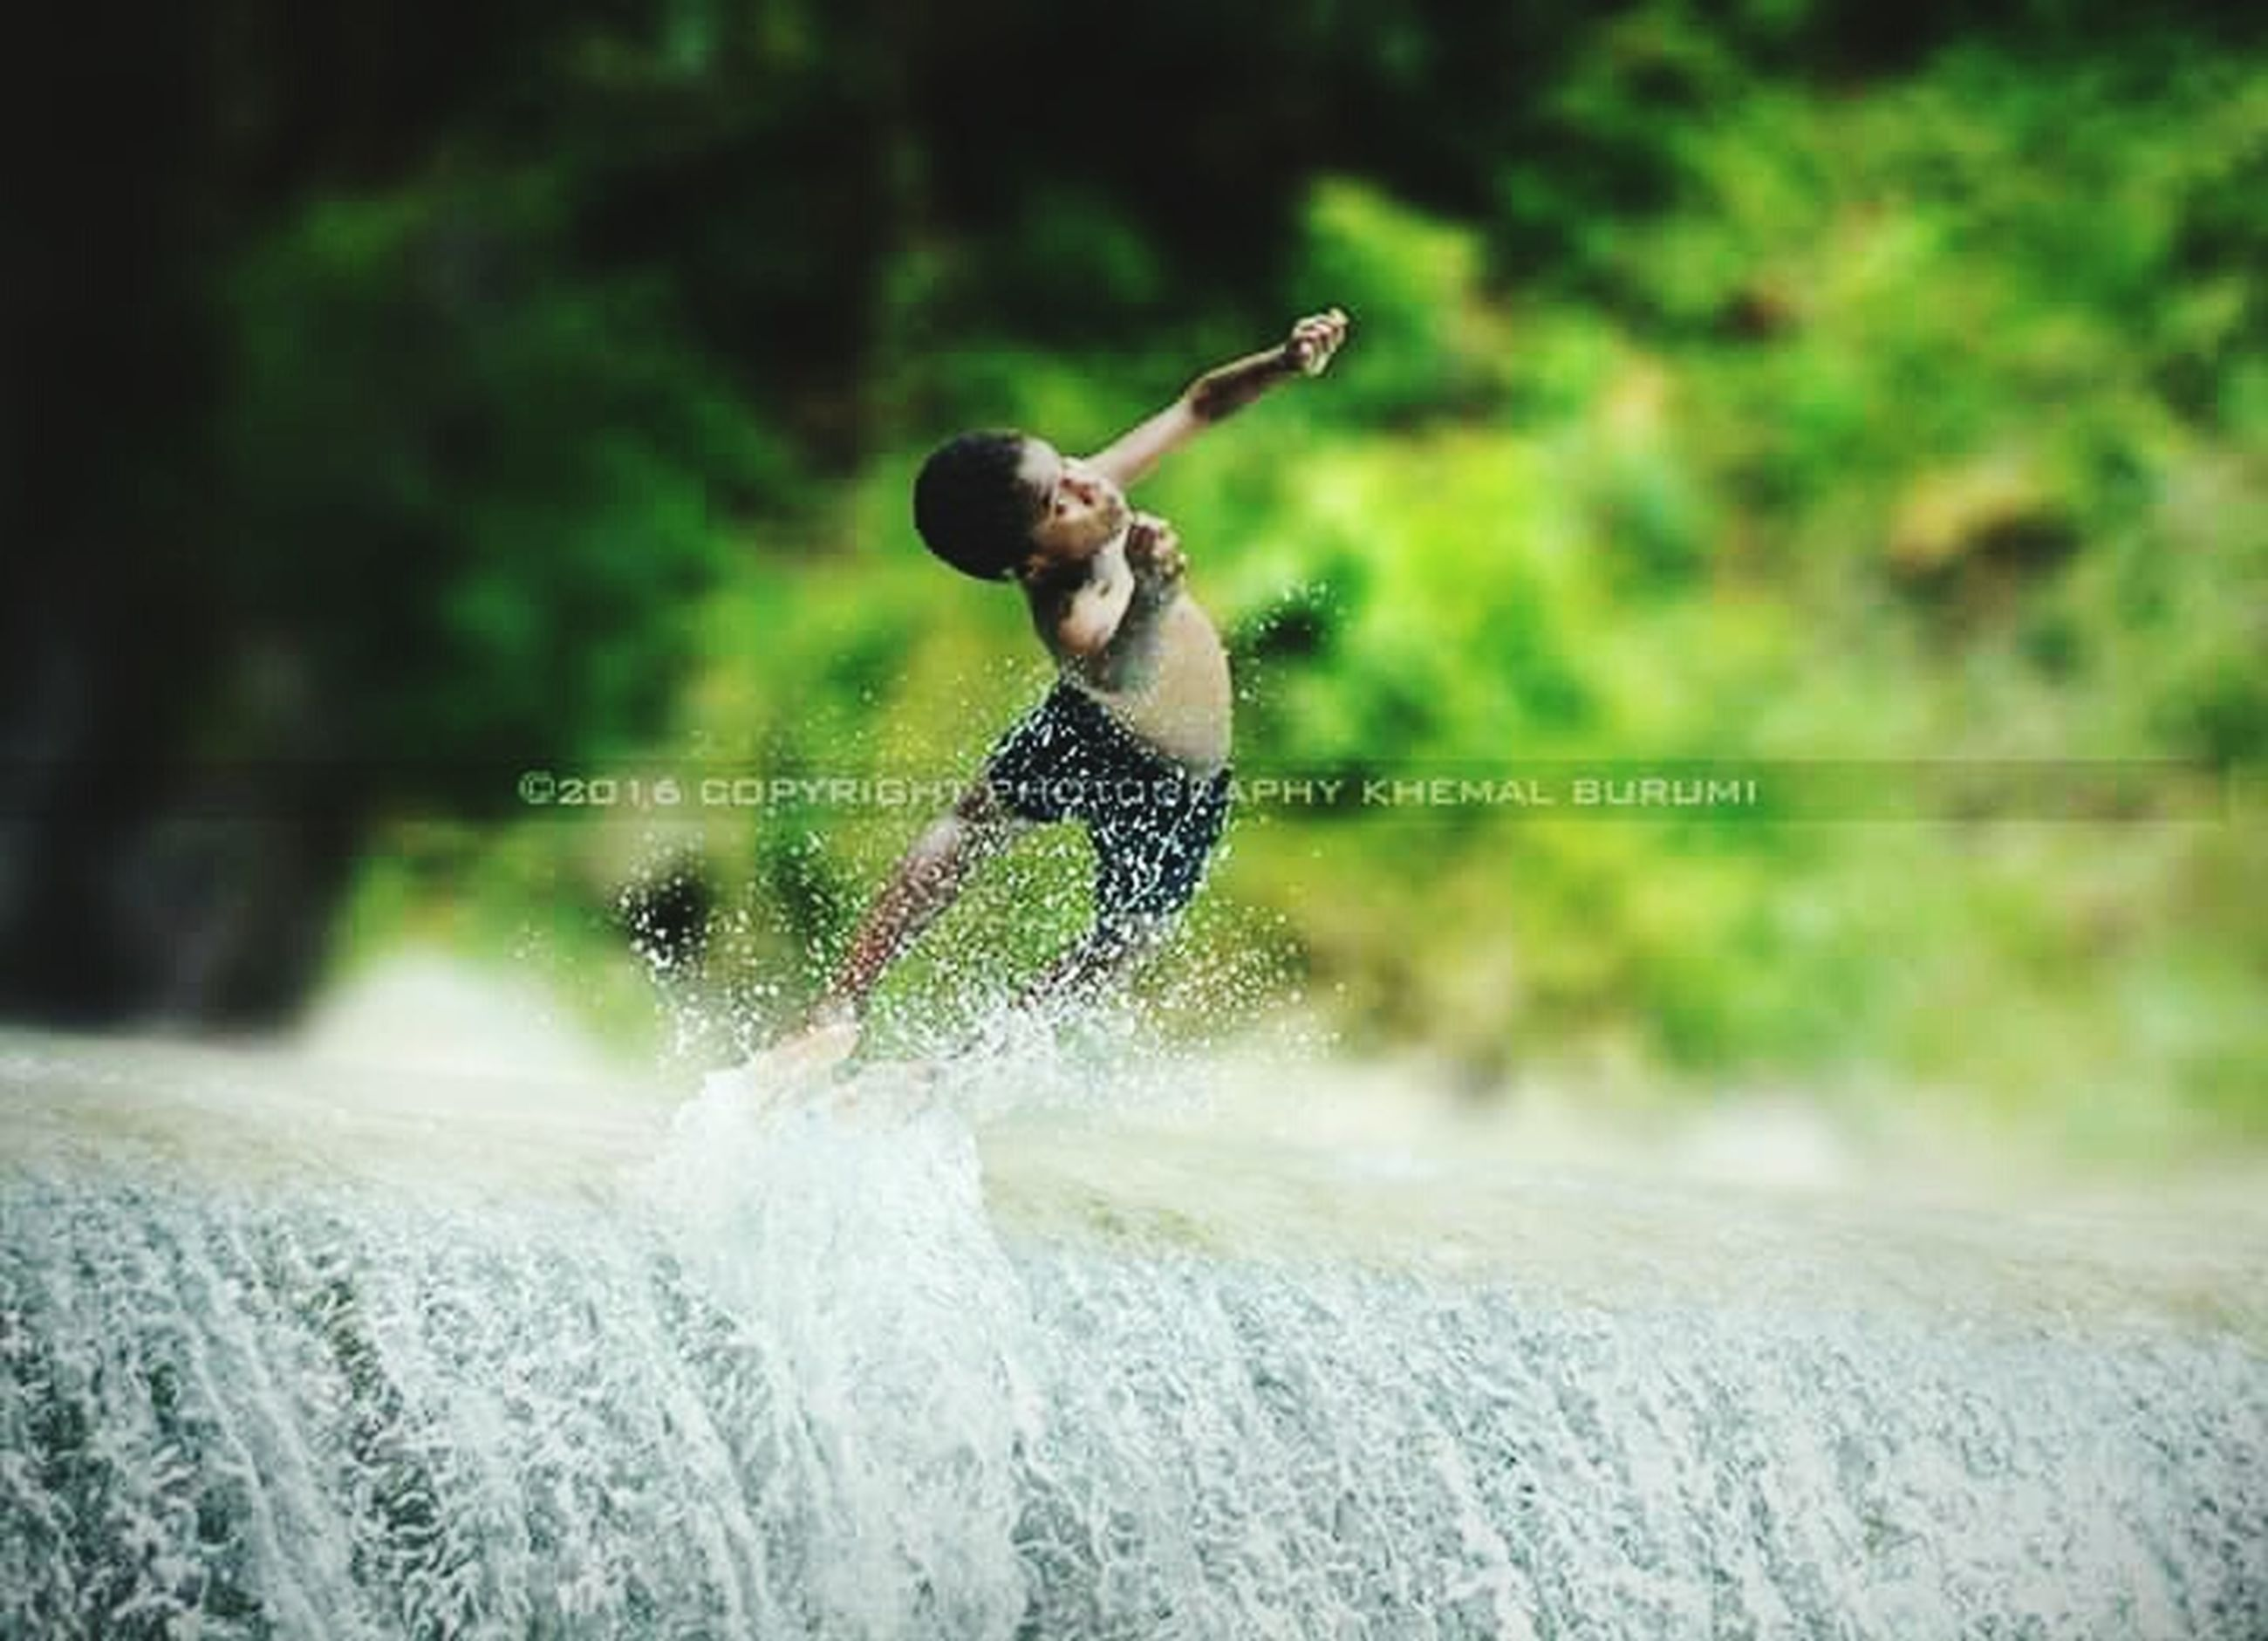 motion, water, splashing, one person, men, nature, males, sport, fun, childhood, child, leisure activity, playing, enjoyment, boys, adult, day, human arm, outdoors, arms raised, spraying, excitement